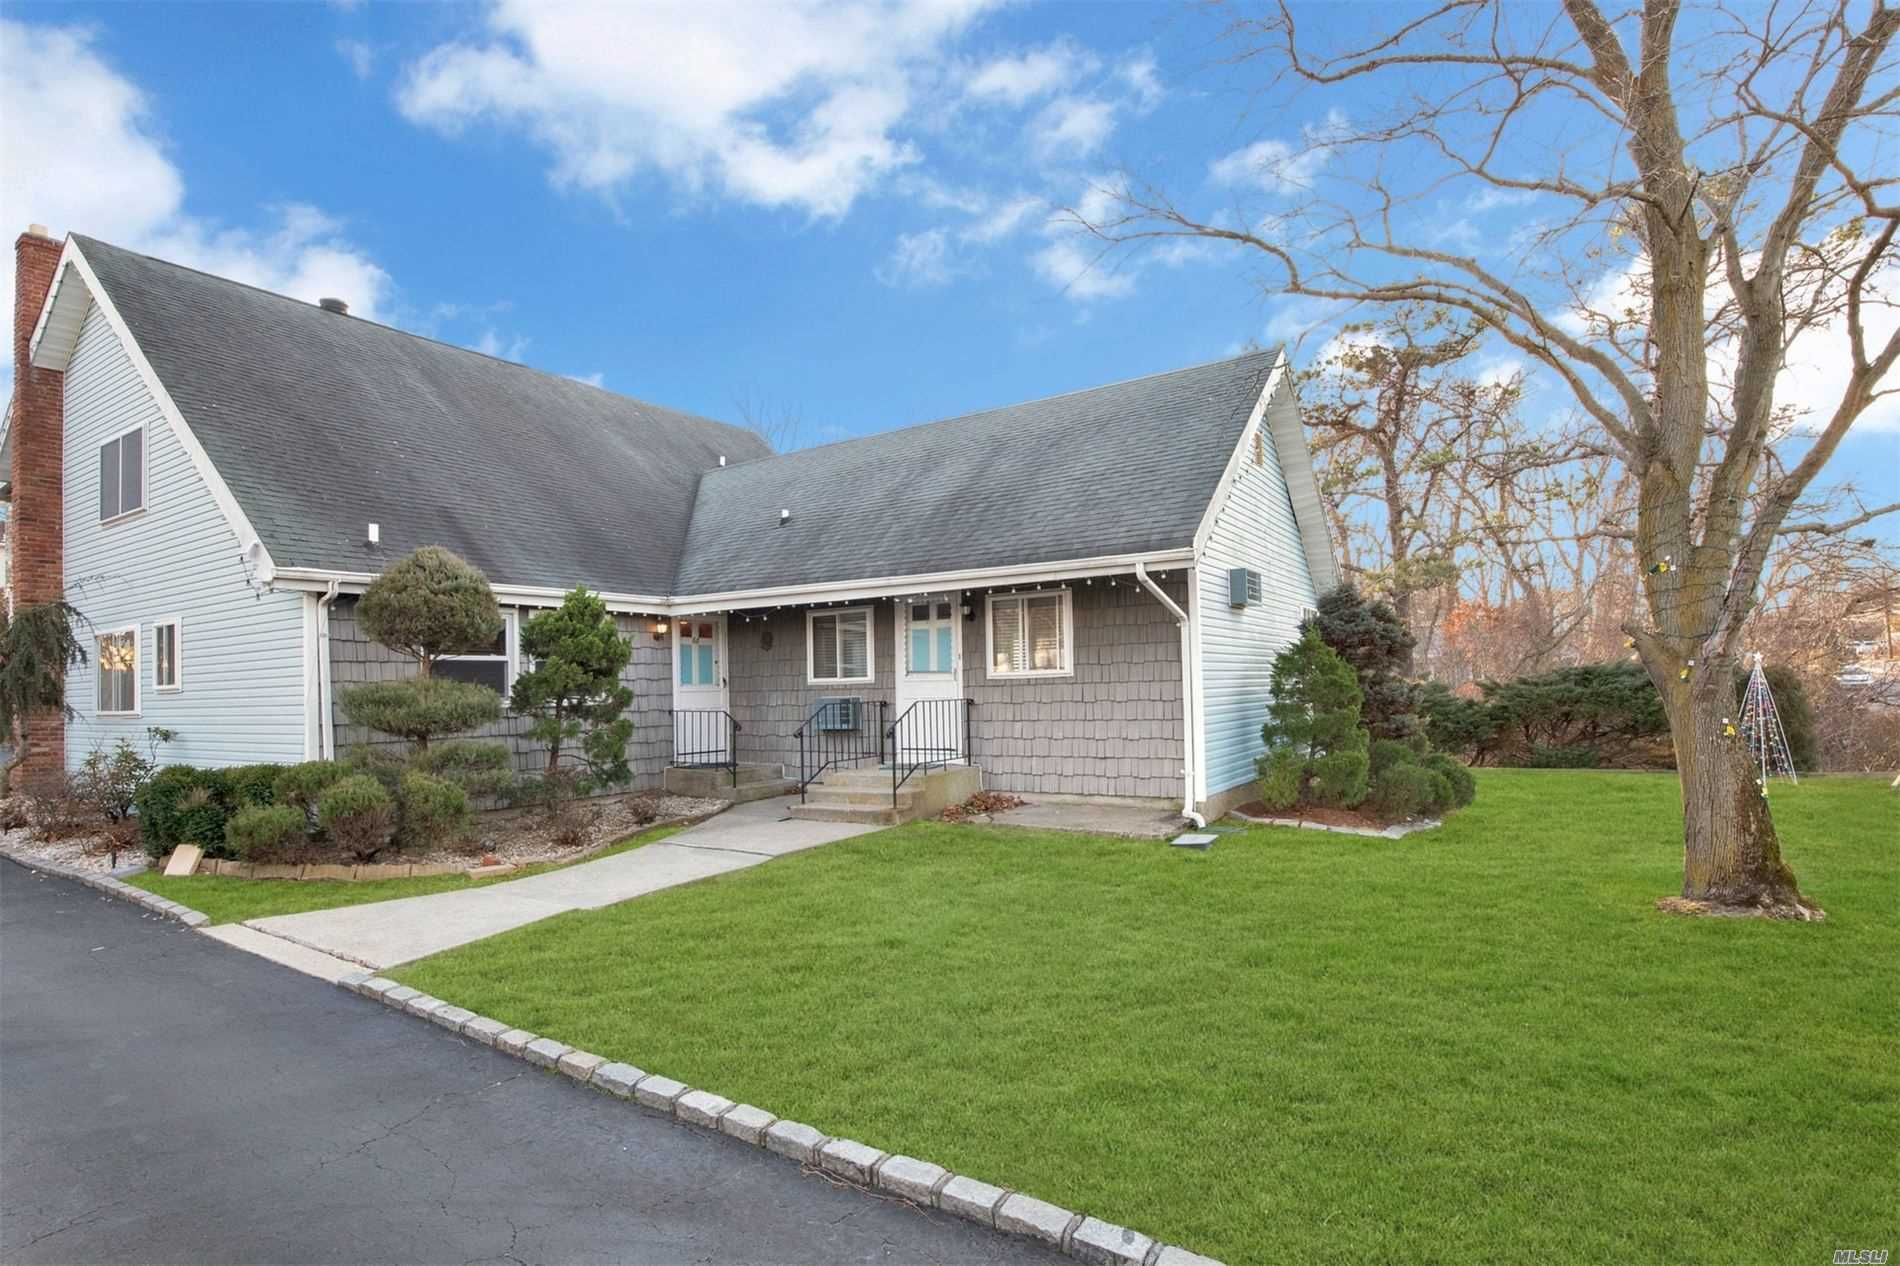 68 W Woodside Ave - Patchogue, New York